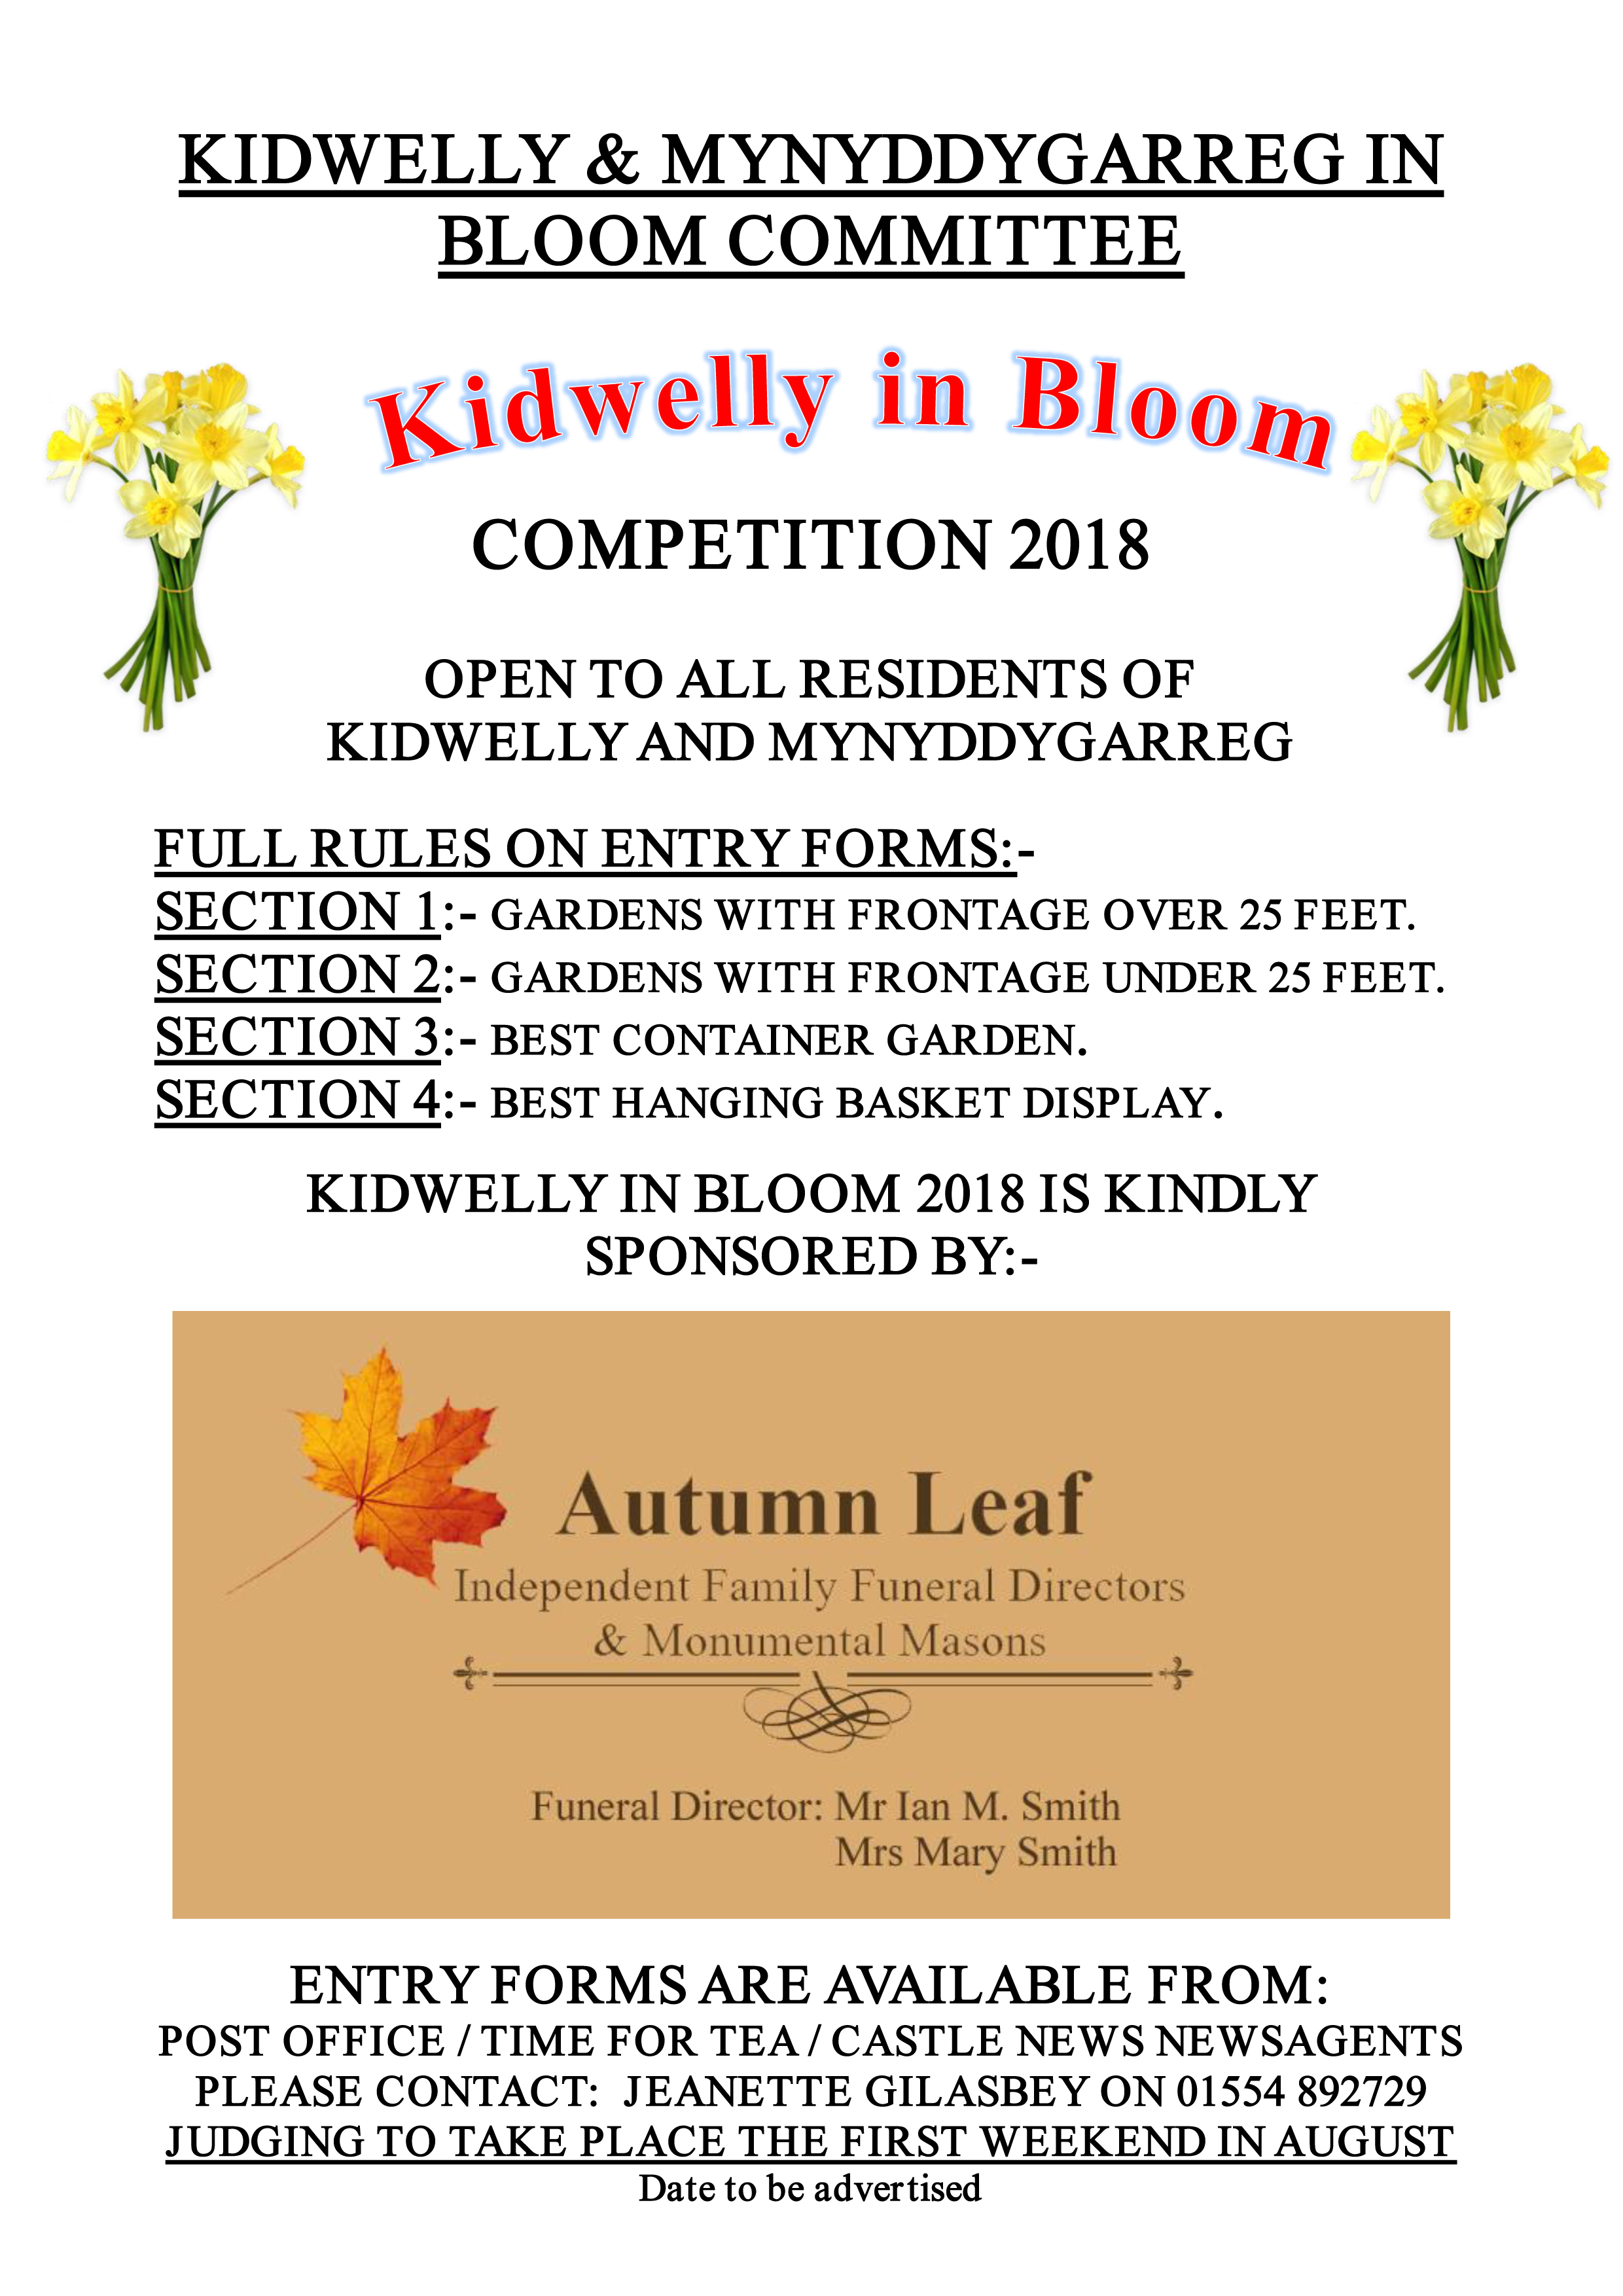 Kidwelly in Bloom Competition 2018